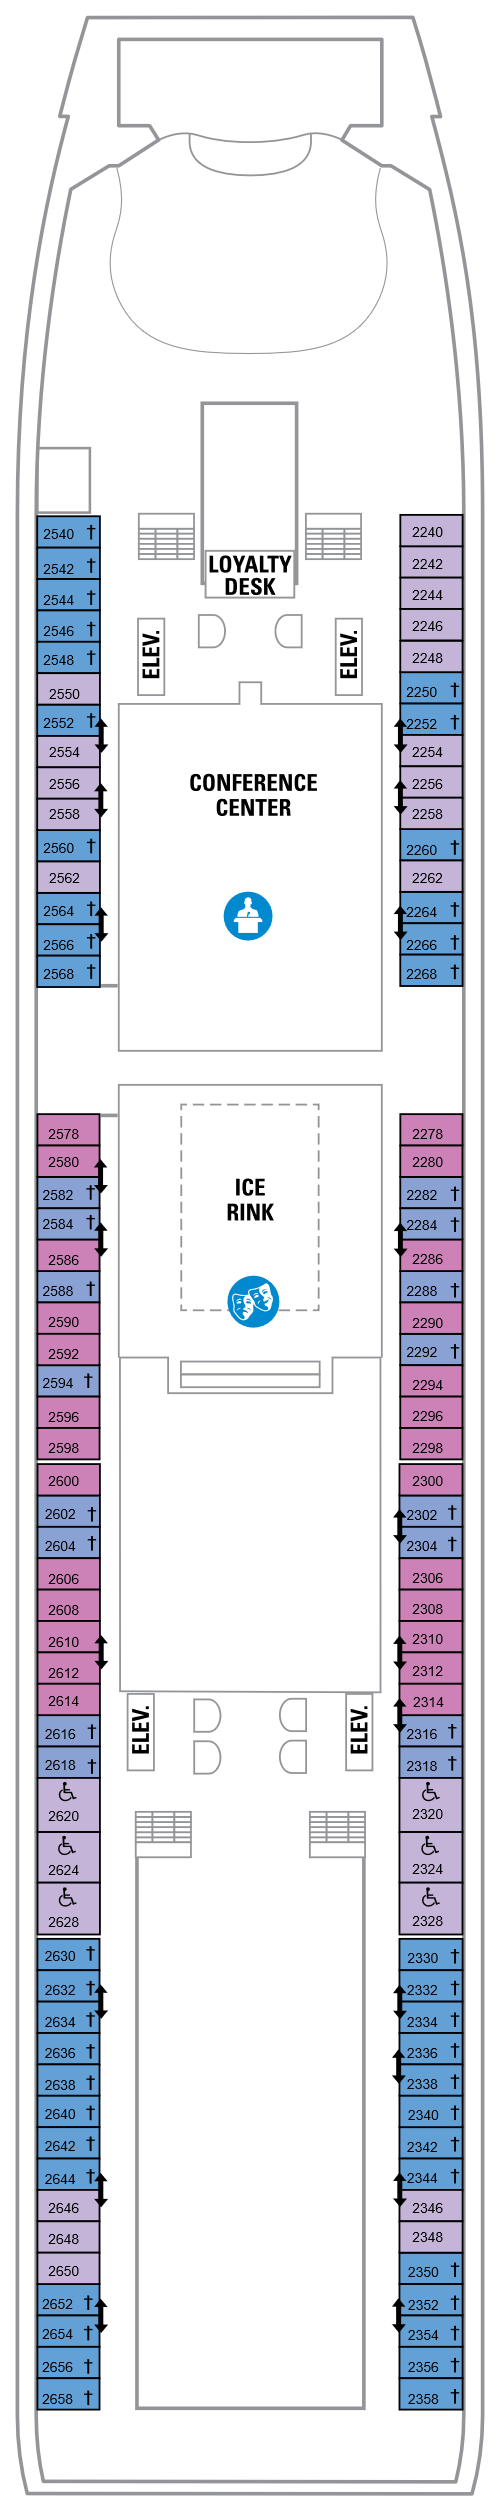 Navigator Of The Seas Deck 2 layout